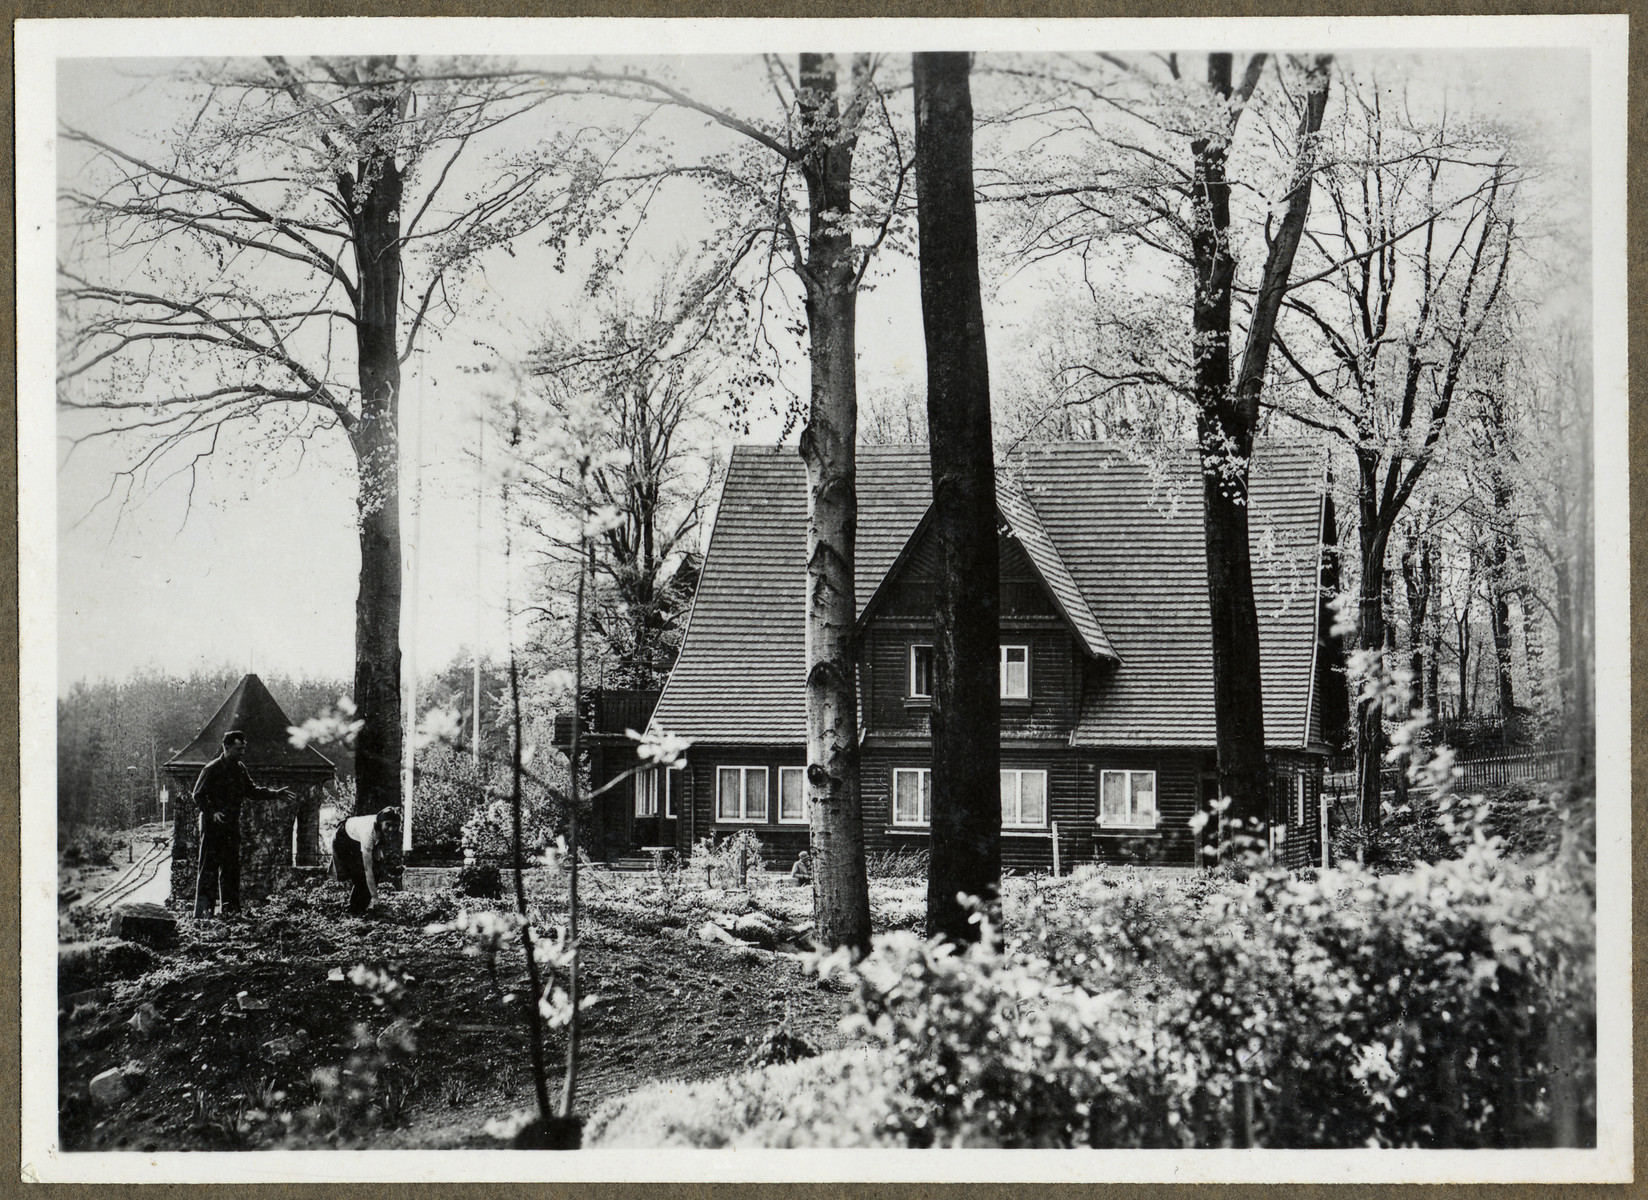 View of the home of Sturmbahnfuehrer Hierthses, second troop commander, in the newly liberated Buchenwald concentration camp.